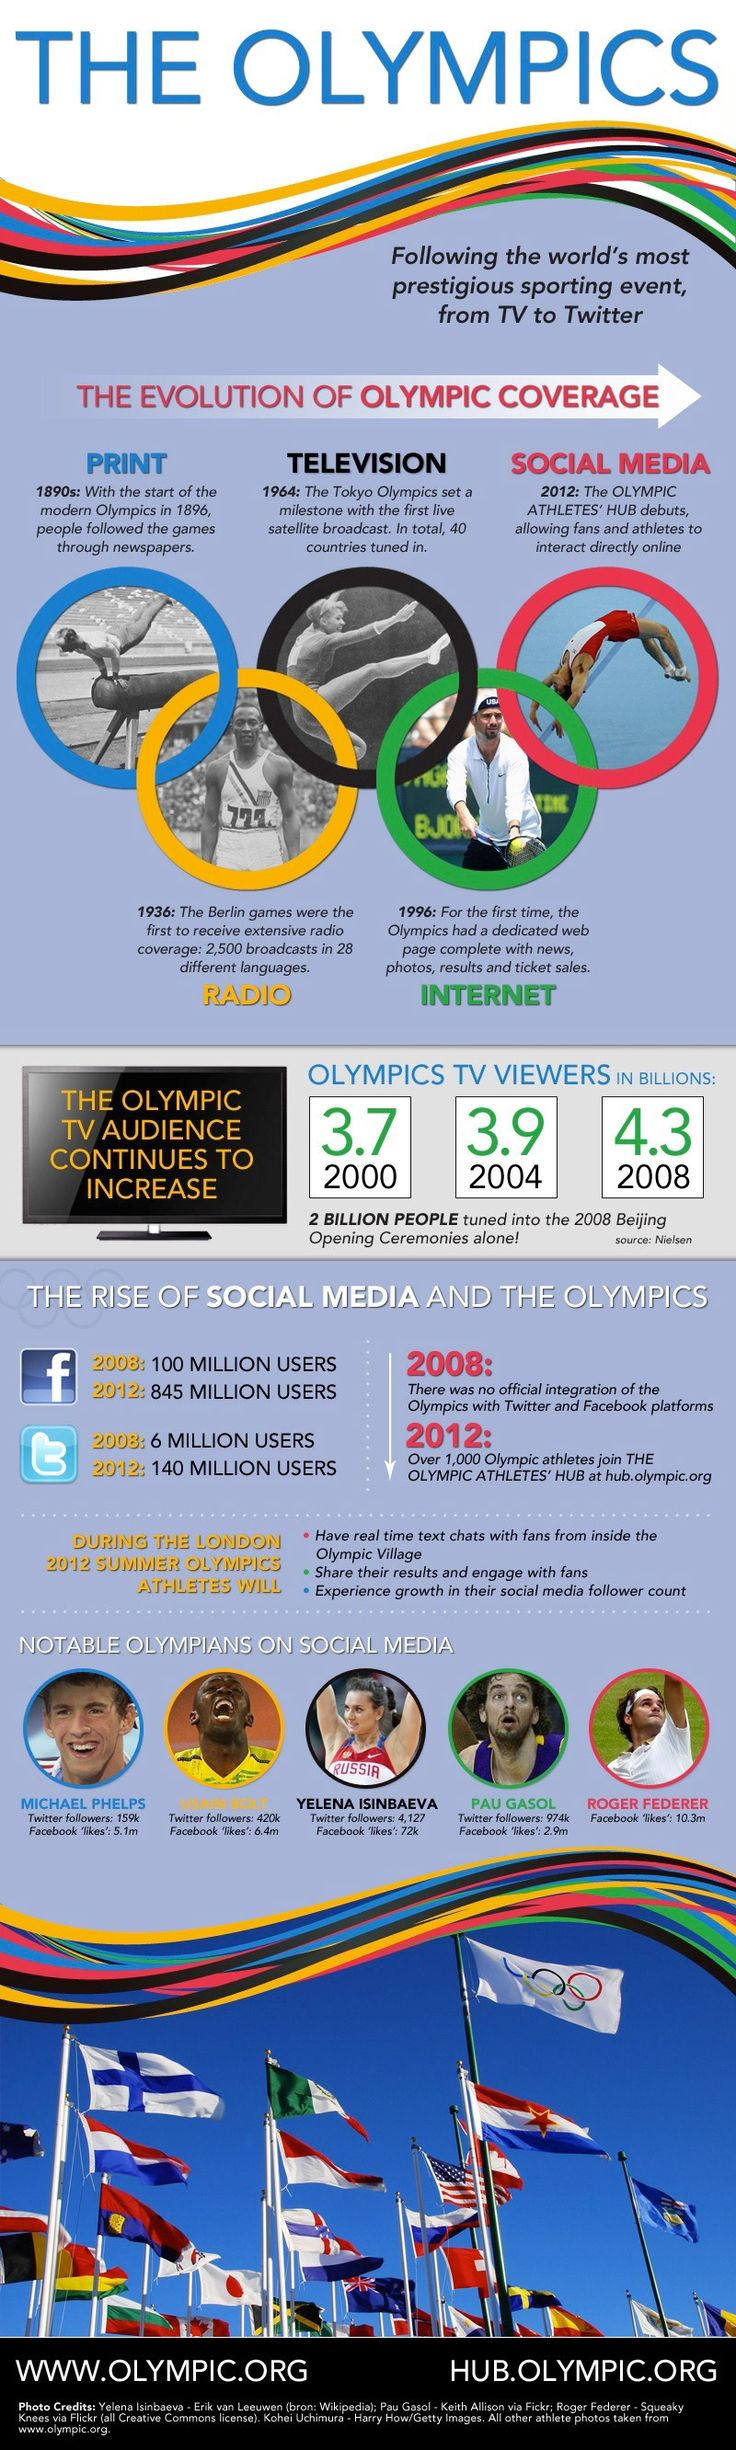 The Rise of Social Media on the Olympics London